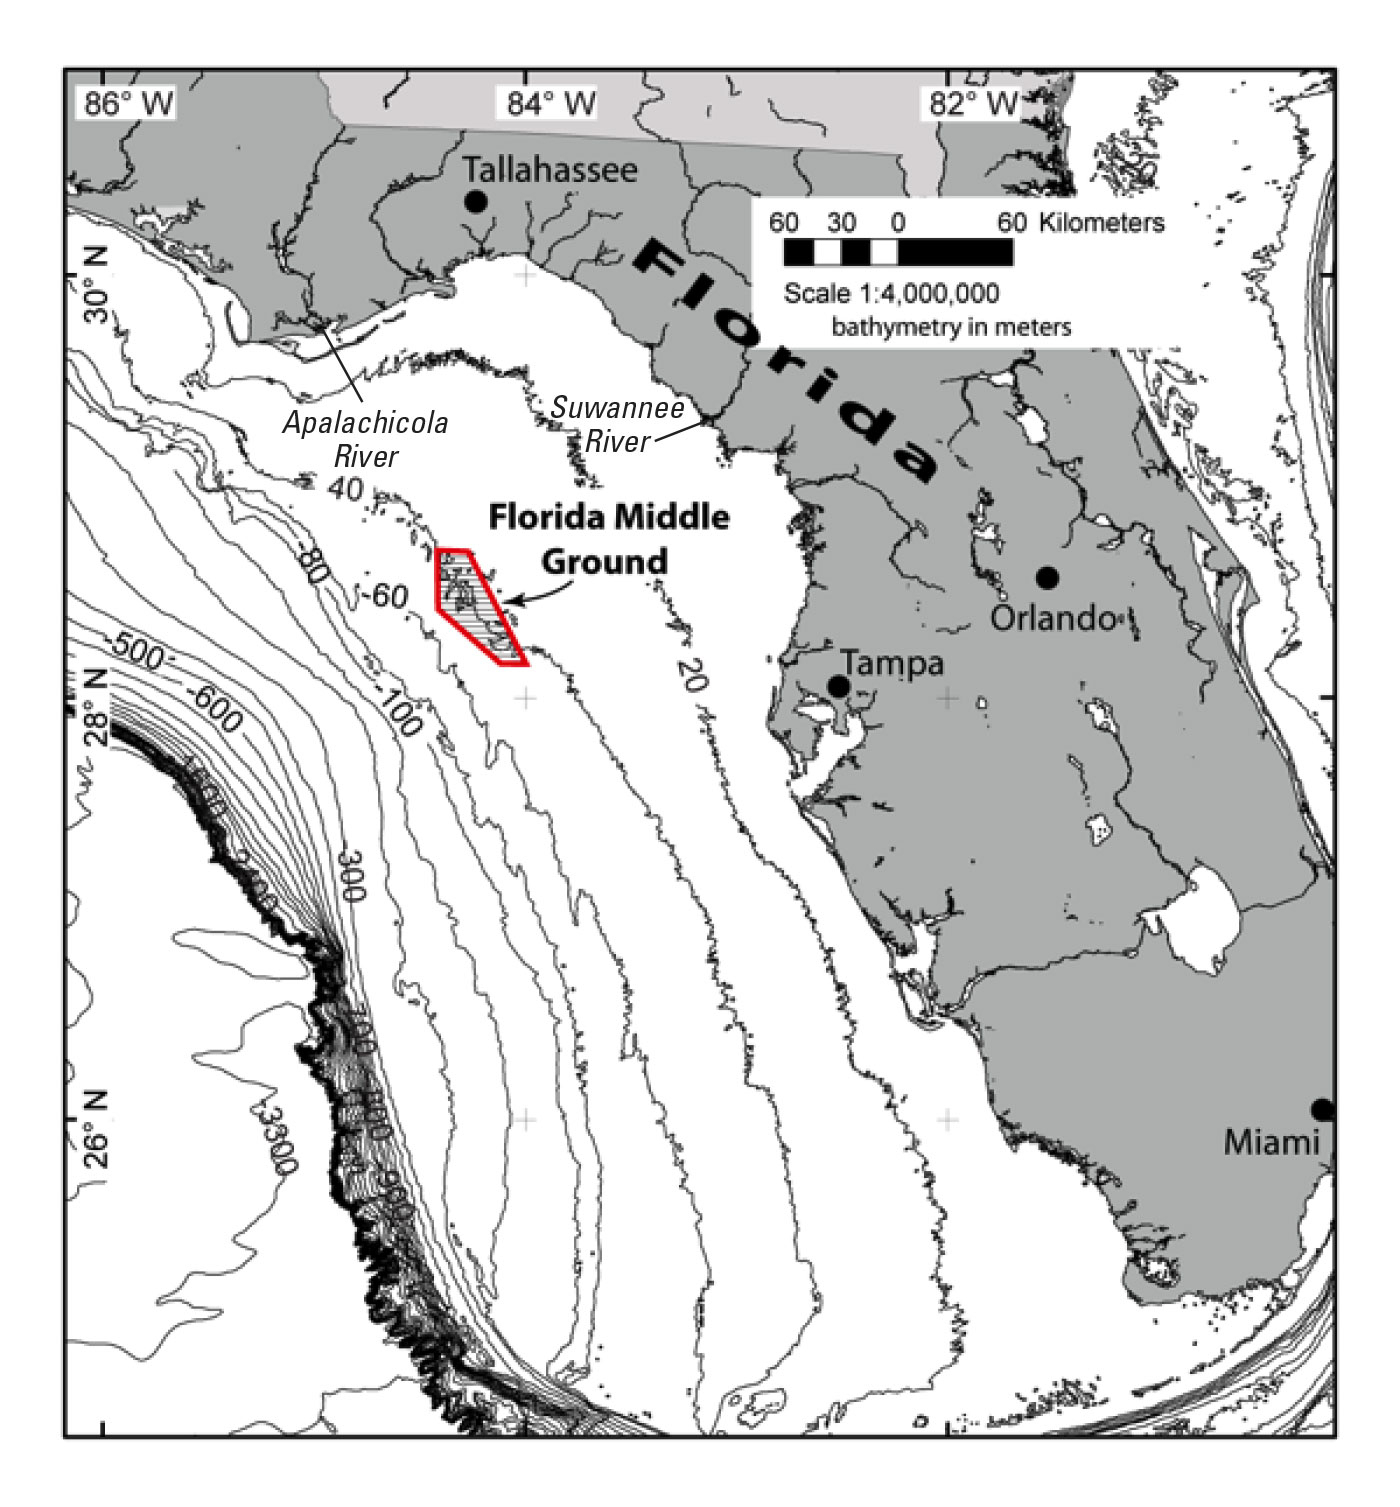 New Geologic Explanation For The Florida Middle Ground In The Gulf - Ocean Depth Map Florida